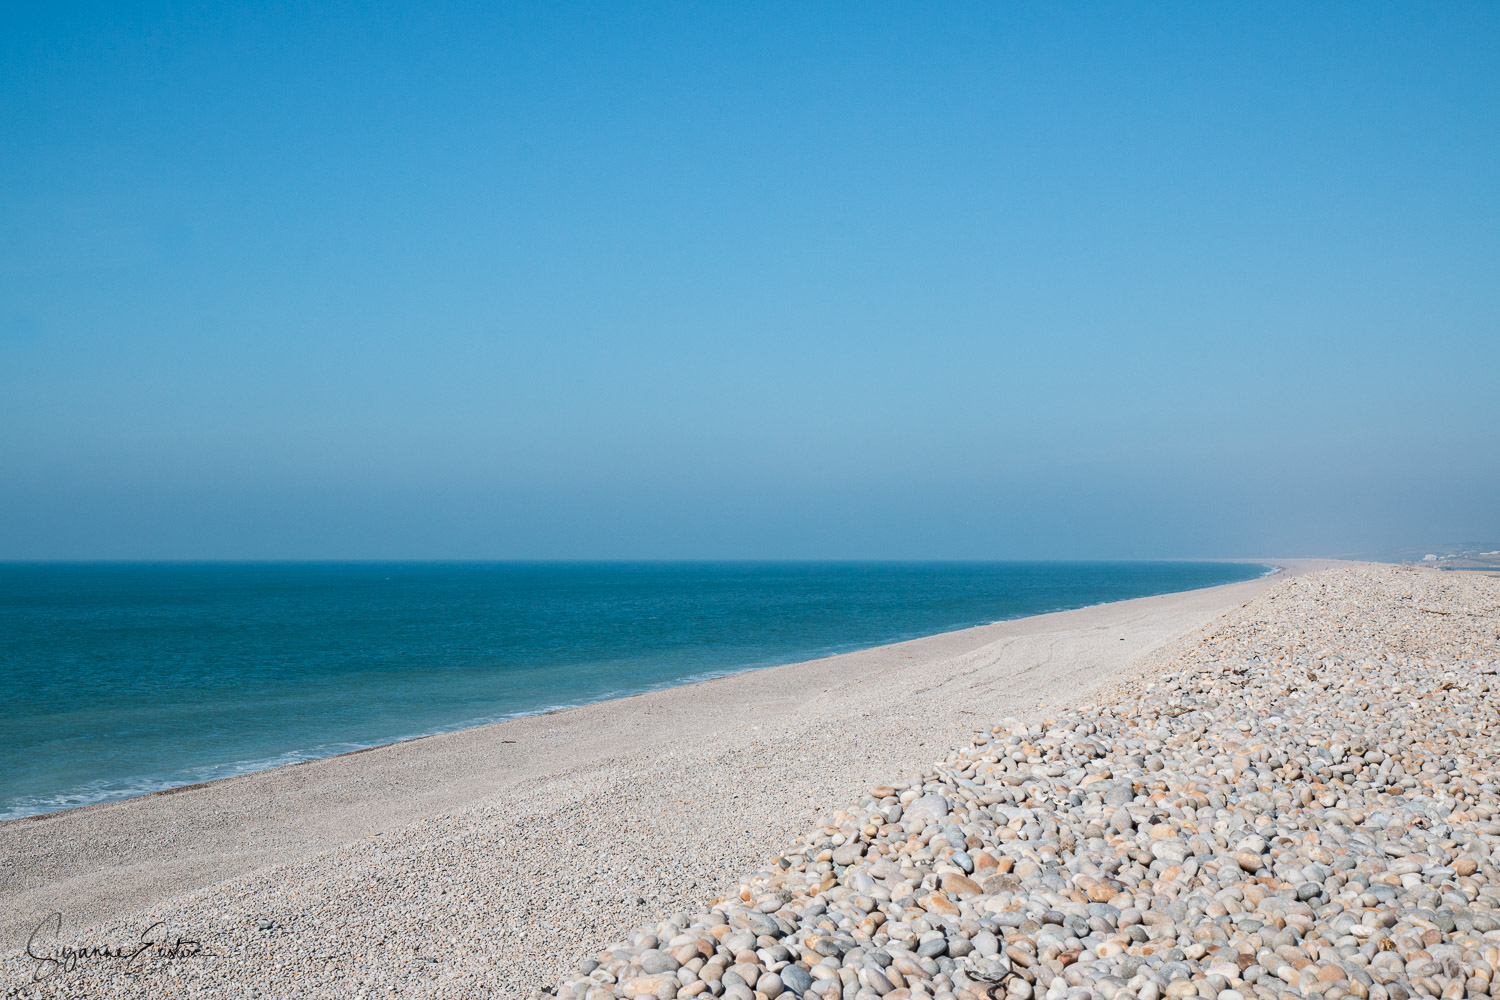 Chesil Beach in Dorset is an 18mile long beach. It is the largest tombolo in England and part of the UNESCO World Heritage Jurassic Coast.